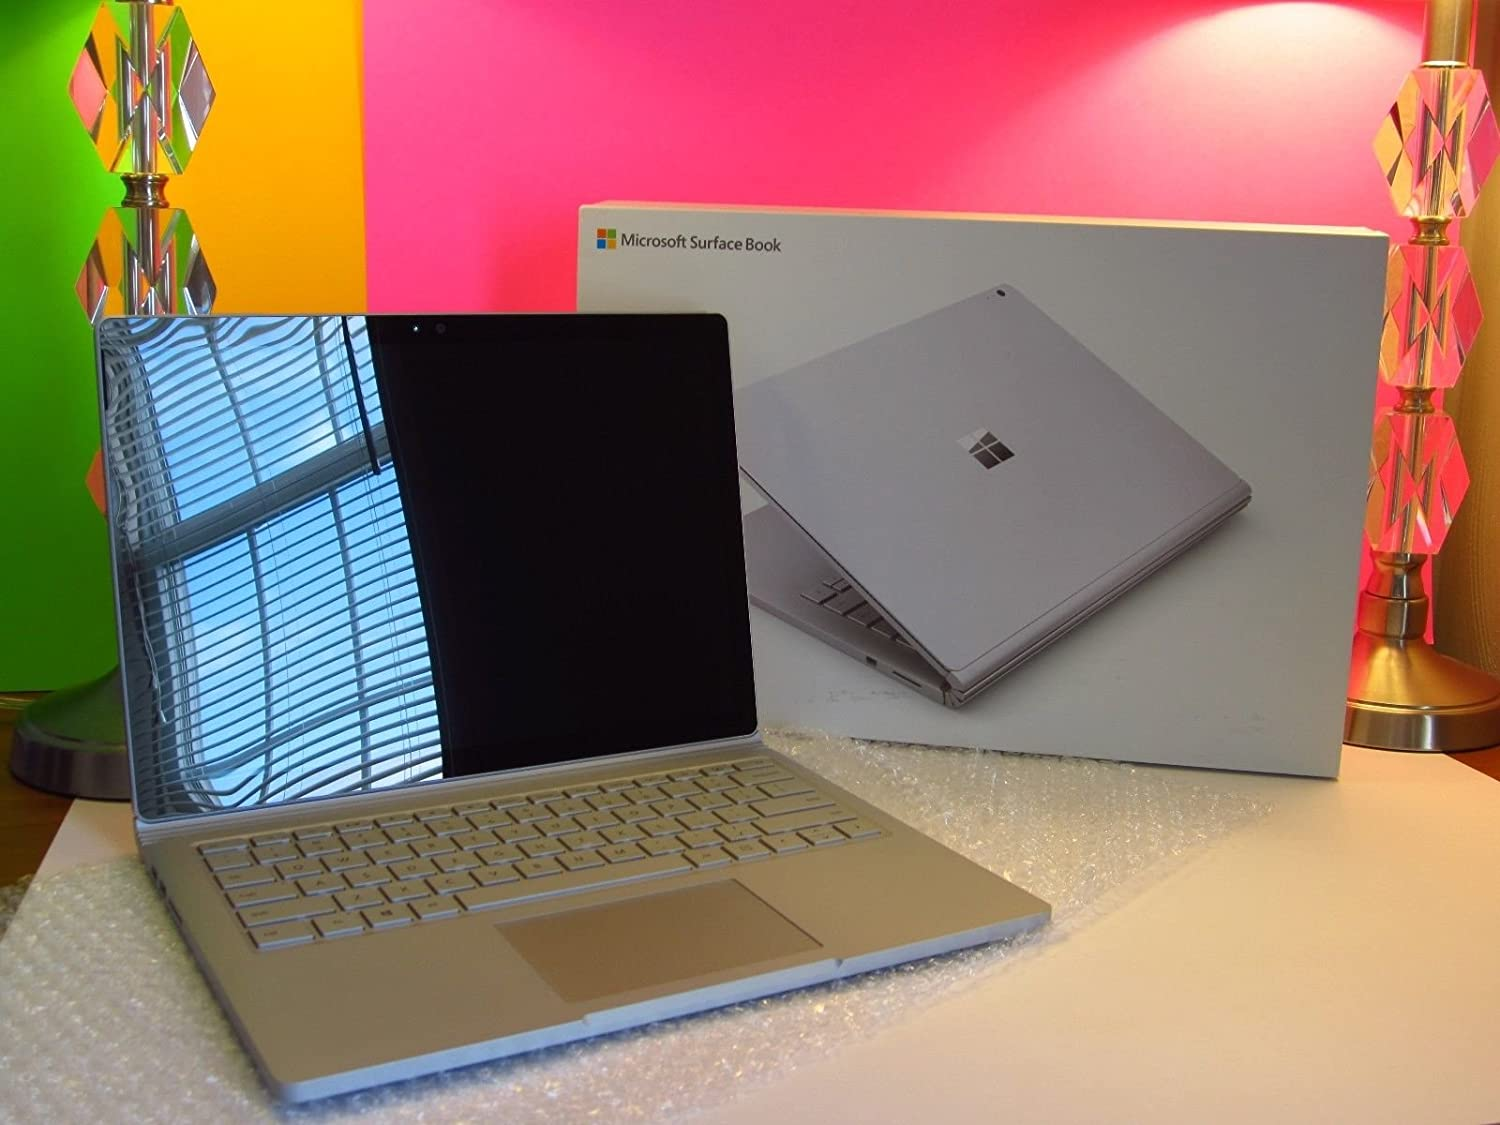 Microsoft Surface Book 256GB with Performance Base (2.6GHz Core i7, 8GB RAM, 13.5 Inch TouchScreen, 16 Hour Battery) Version